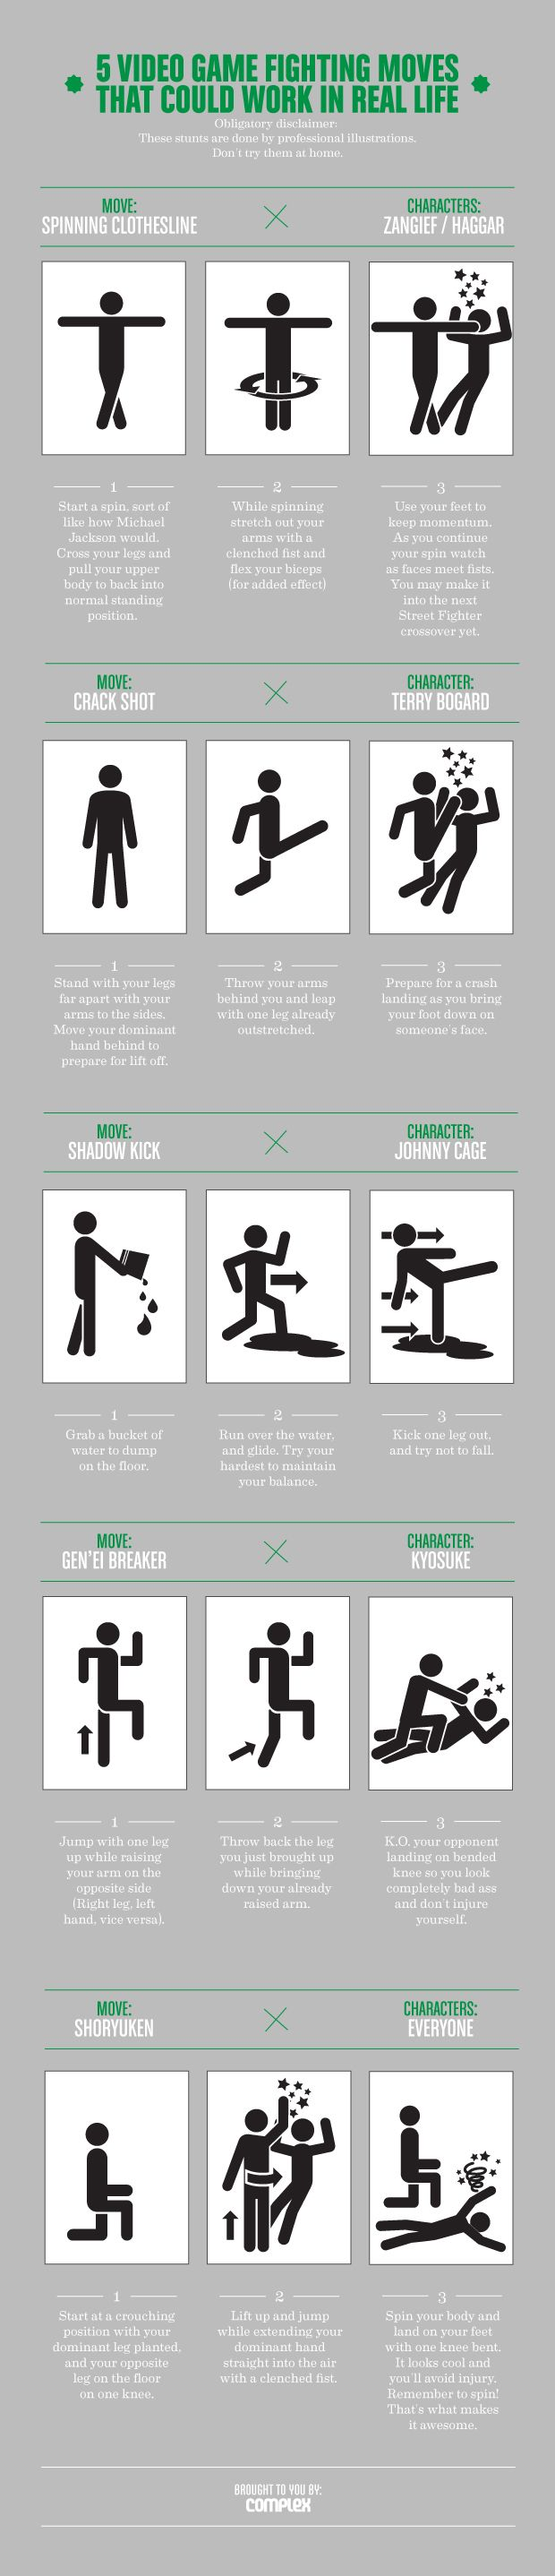 5-Video-Game-Fighting-Moves-That-Could-Work-In-Real-Life-infographic  Find always more on http://infographicsmania.com